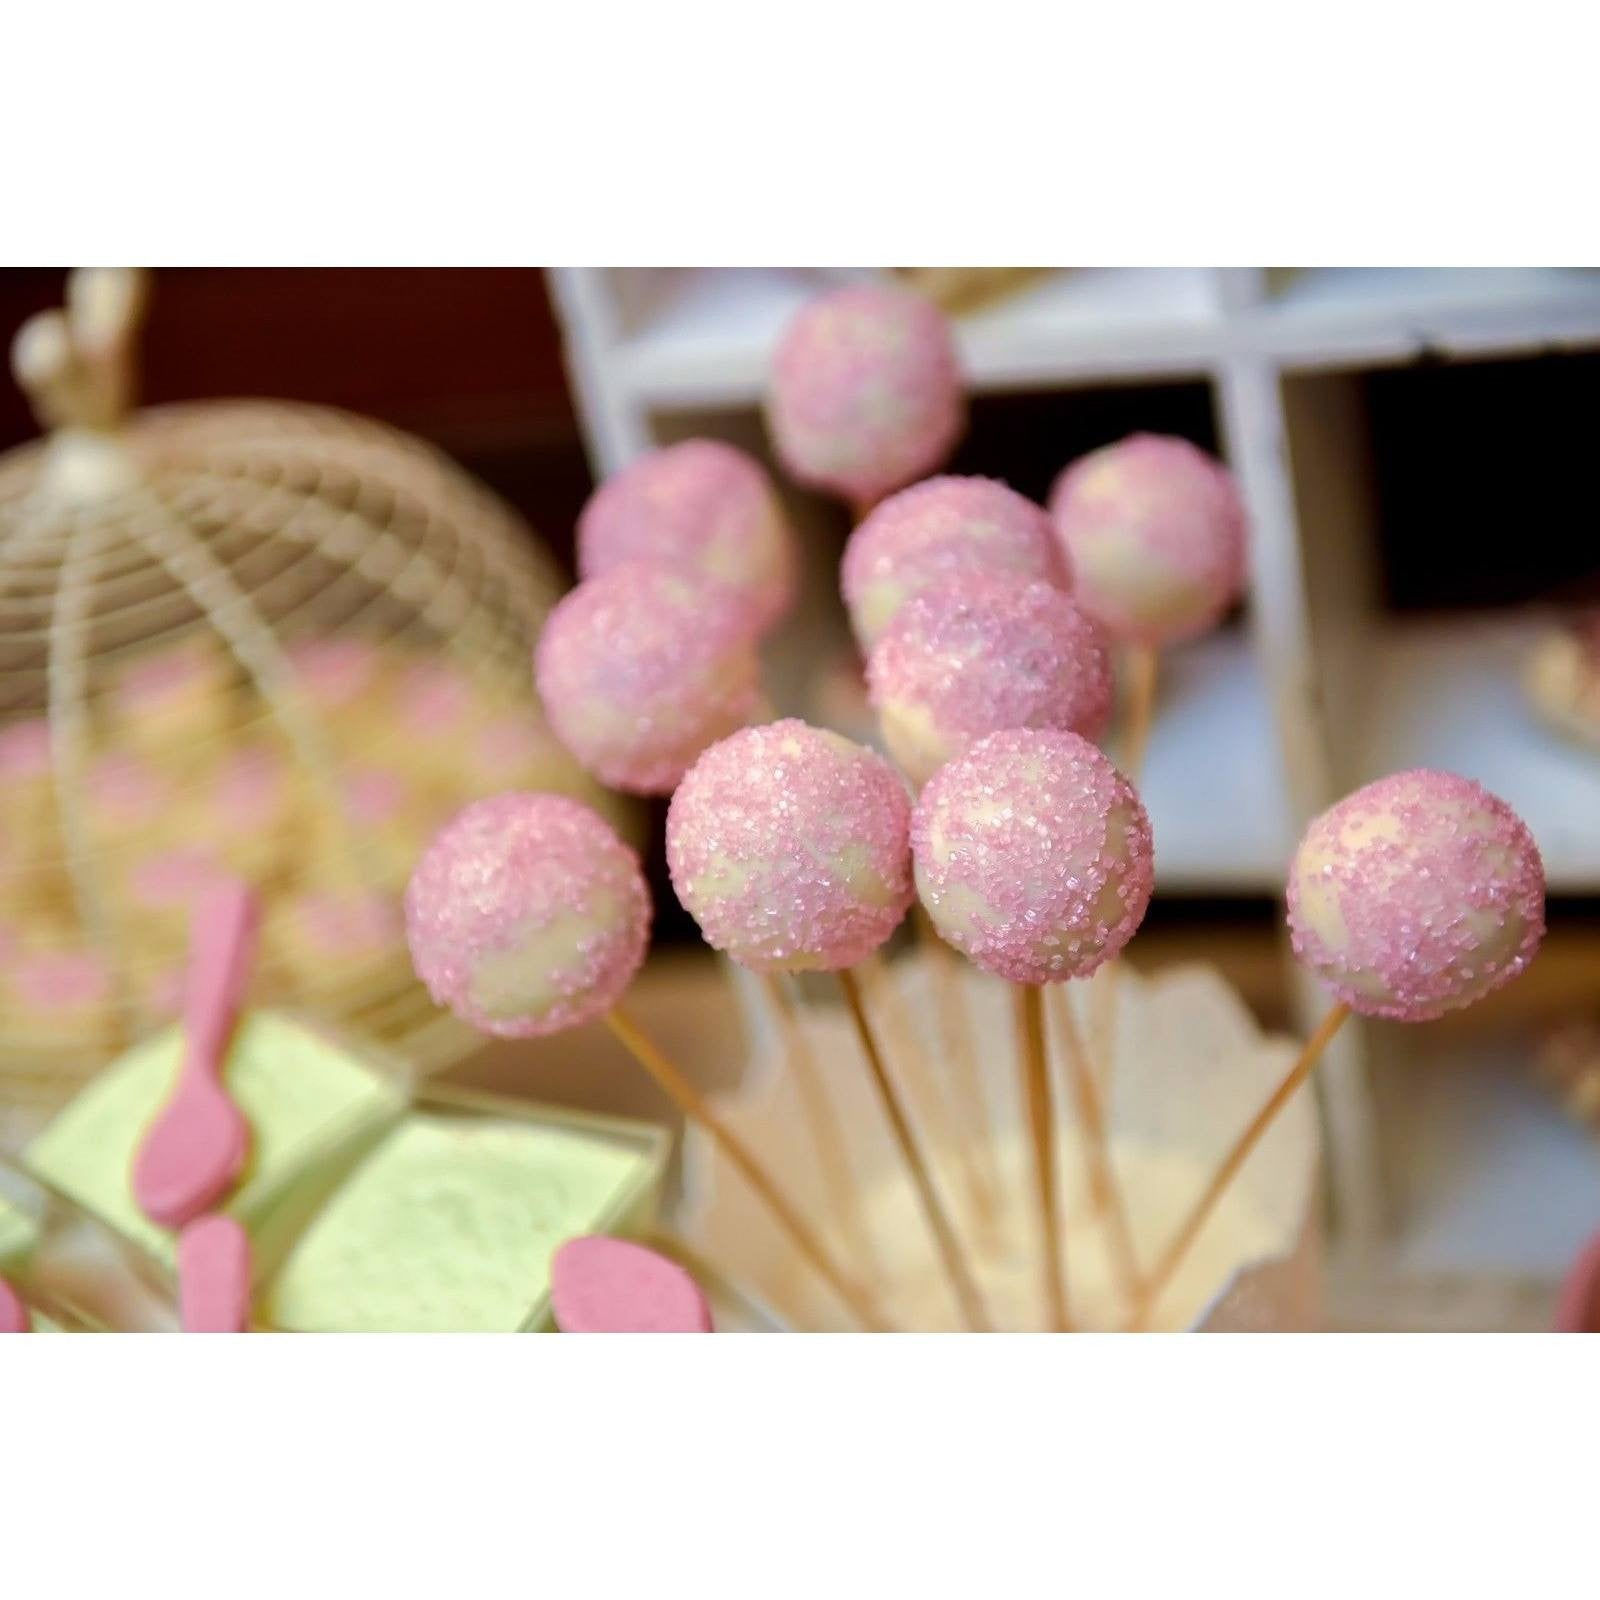 Sparkling Sugar Cake Decoration Sprinkles  crystals cake pops - Cake Pops Parties